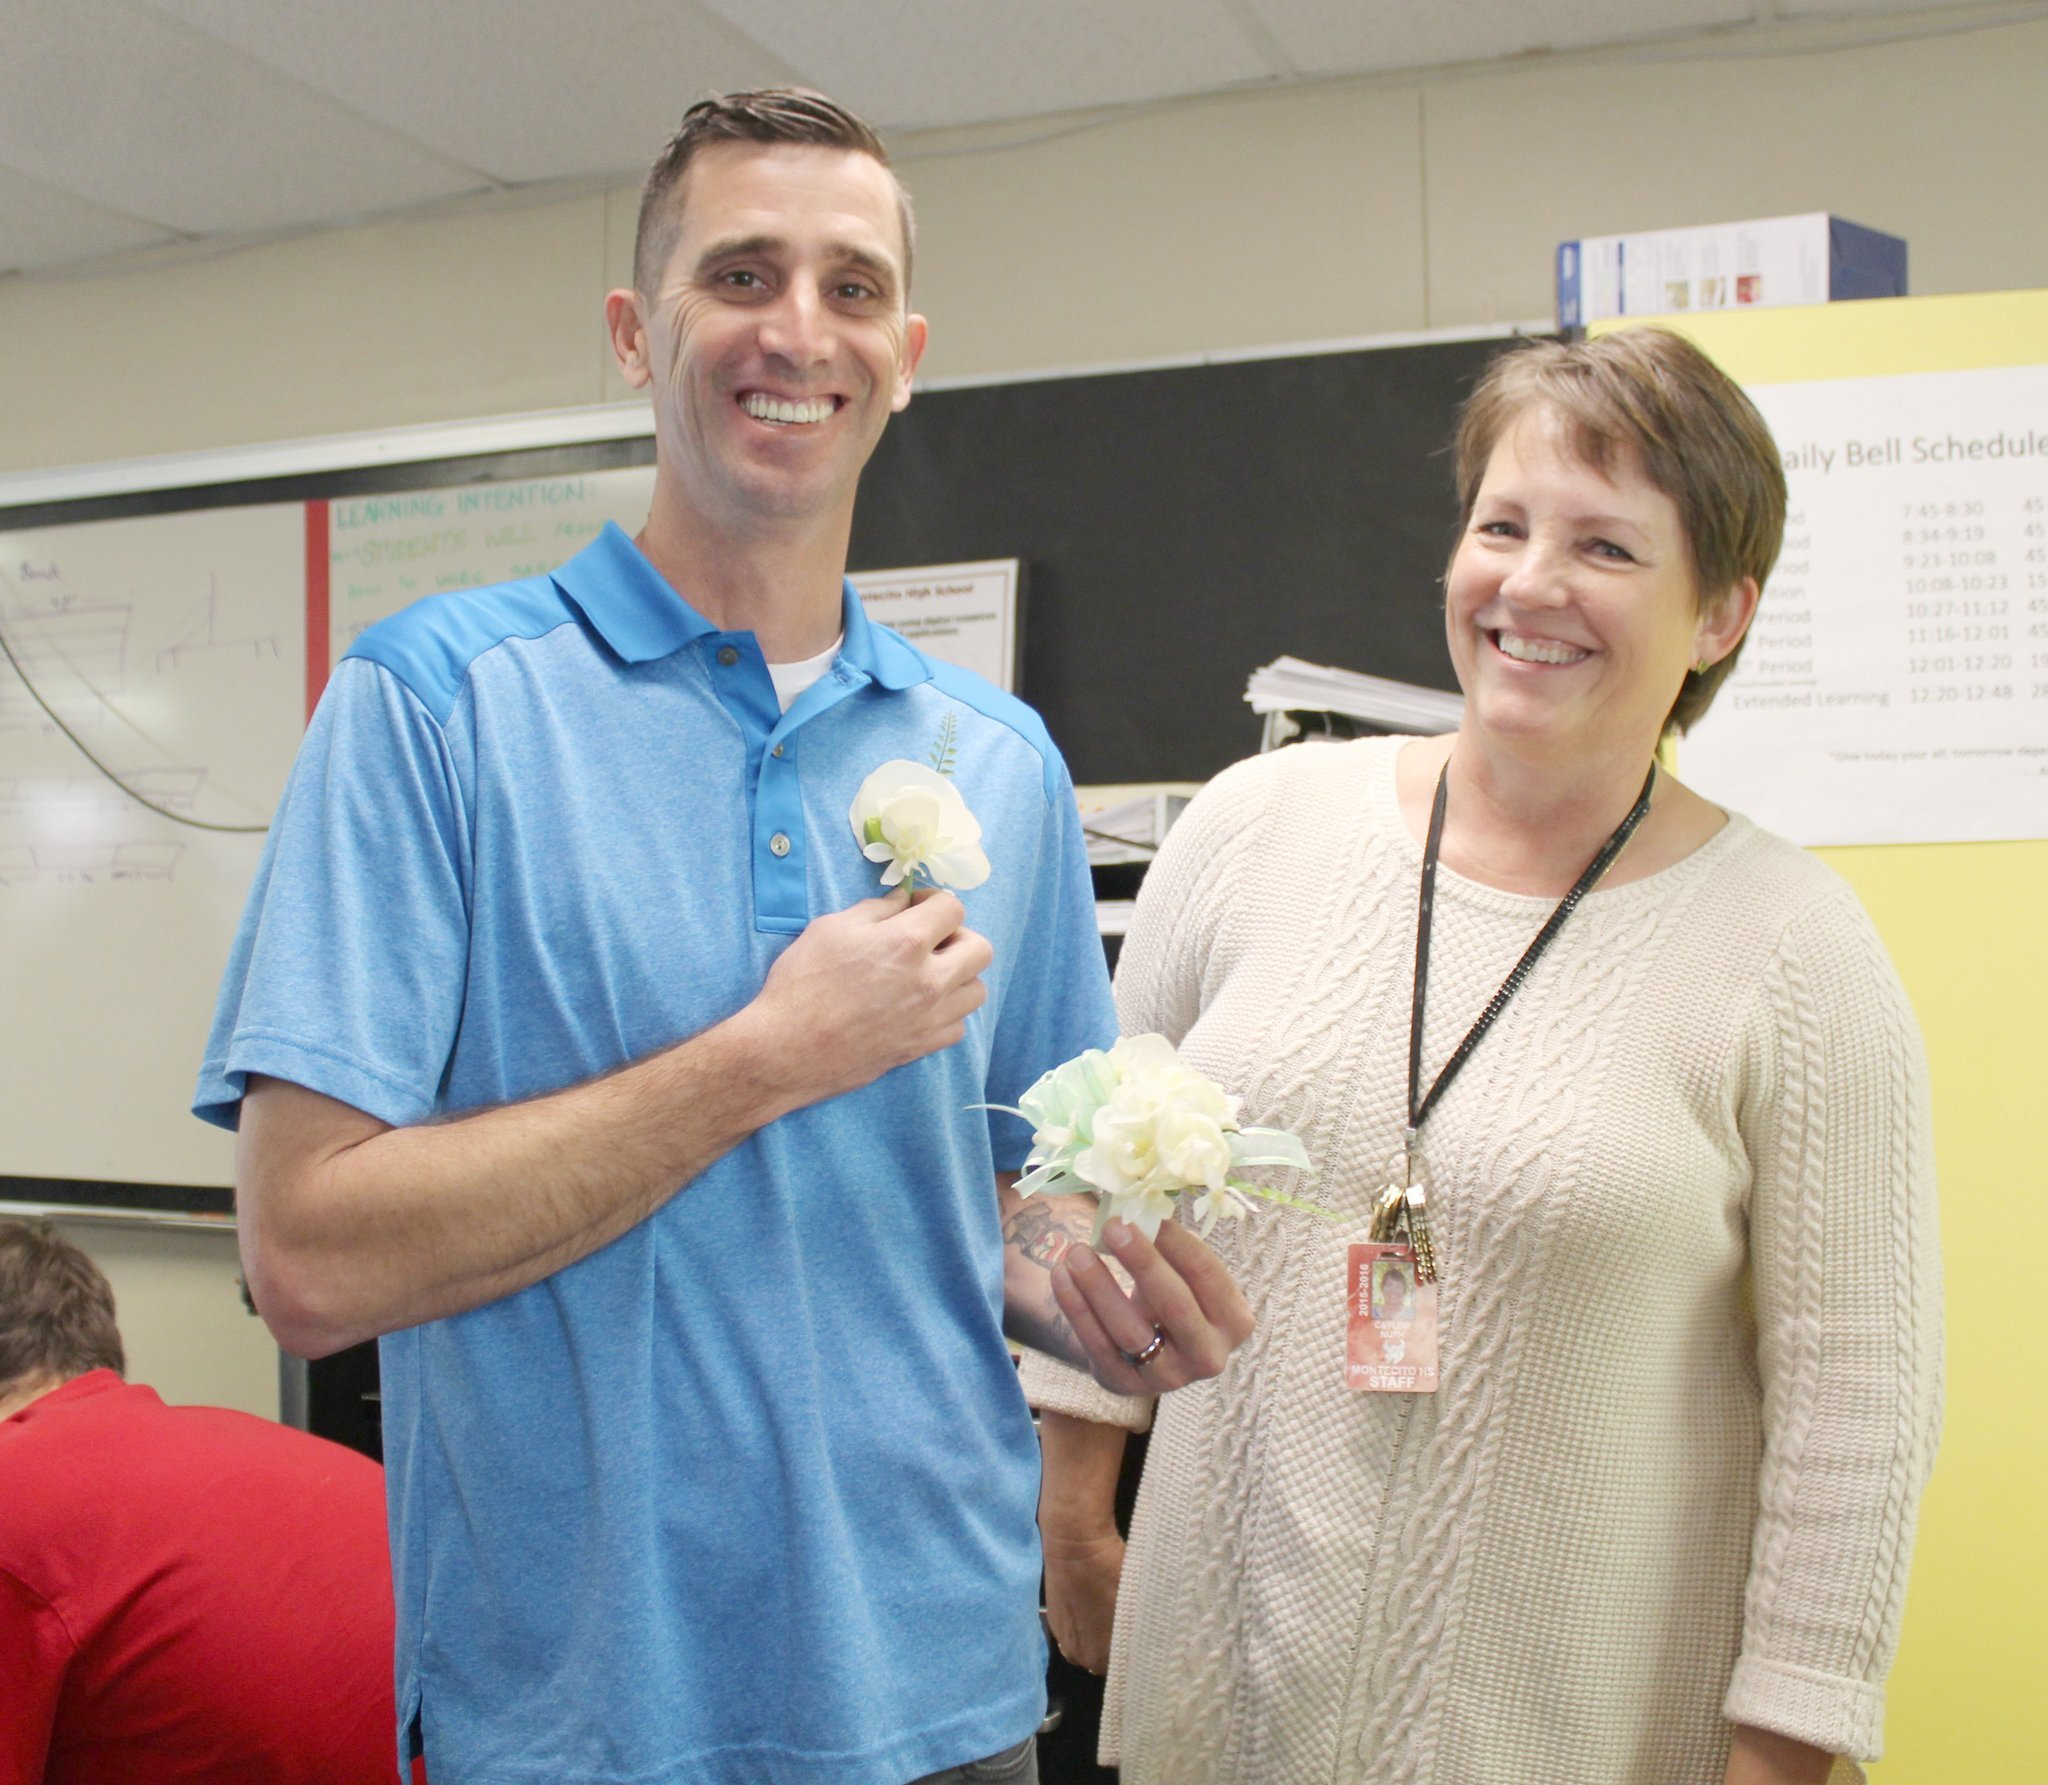 Ramona Unified School District Classified Employee of the Year Caylor Nuth presents Montecito High School construction teacher Nick Jordan  with a boutonniere and corsage she made for him and his daughter to wear at the Father/Daughter Dance at James Dukes Elementary School.